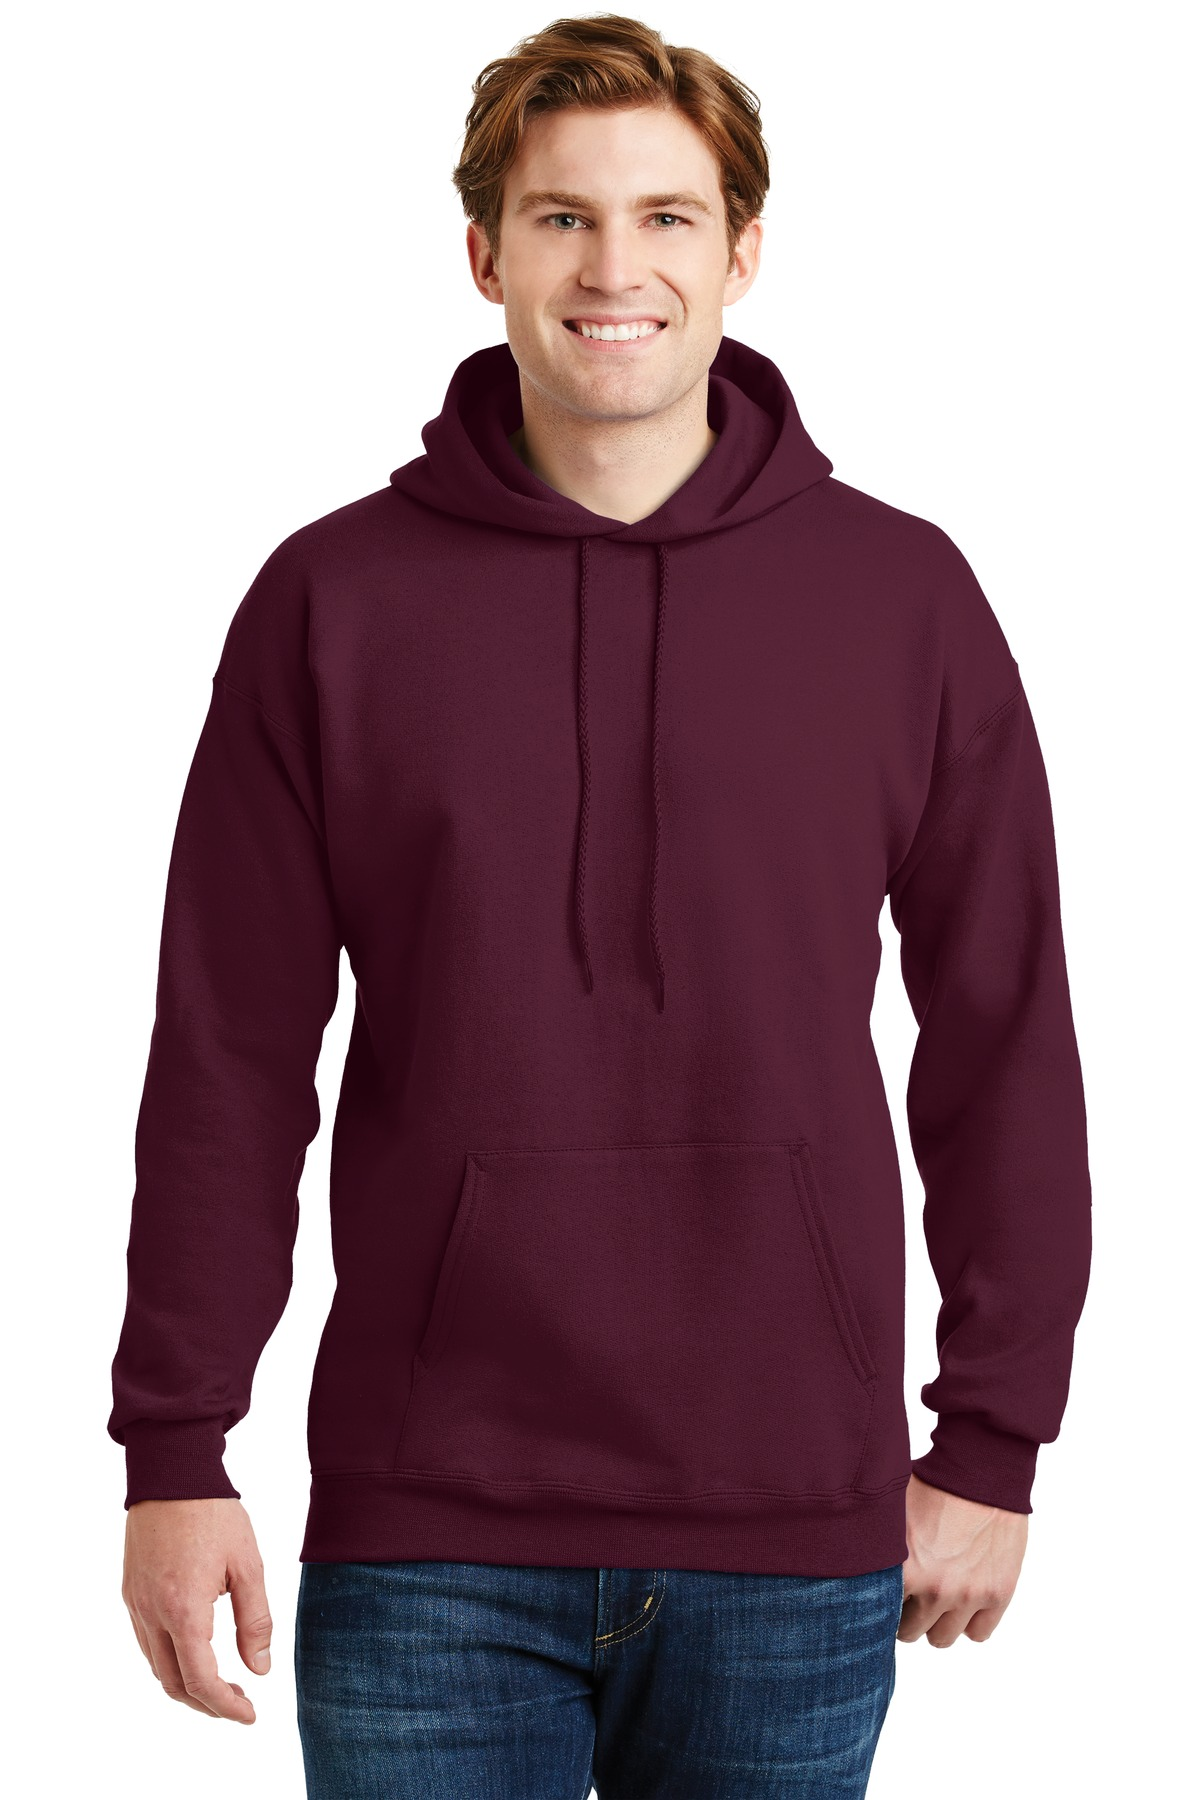 Hanes ®  Ultimate Cotton ®  - Pullover Hooded Sweatshirt.  F170 - Maroon